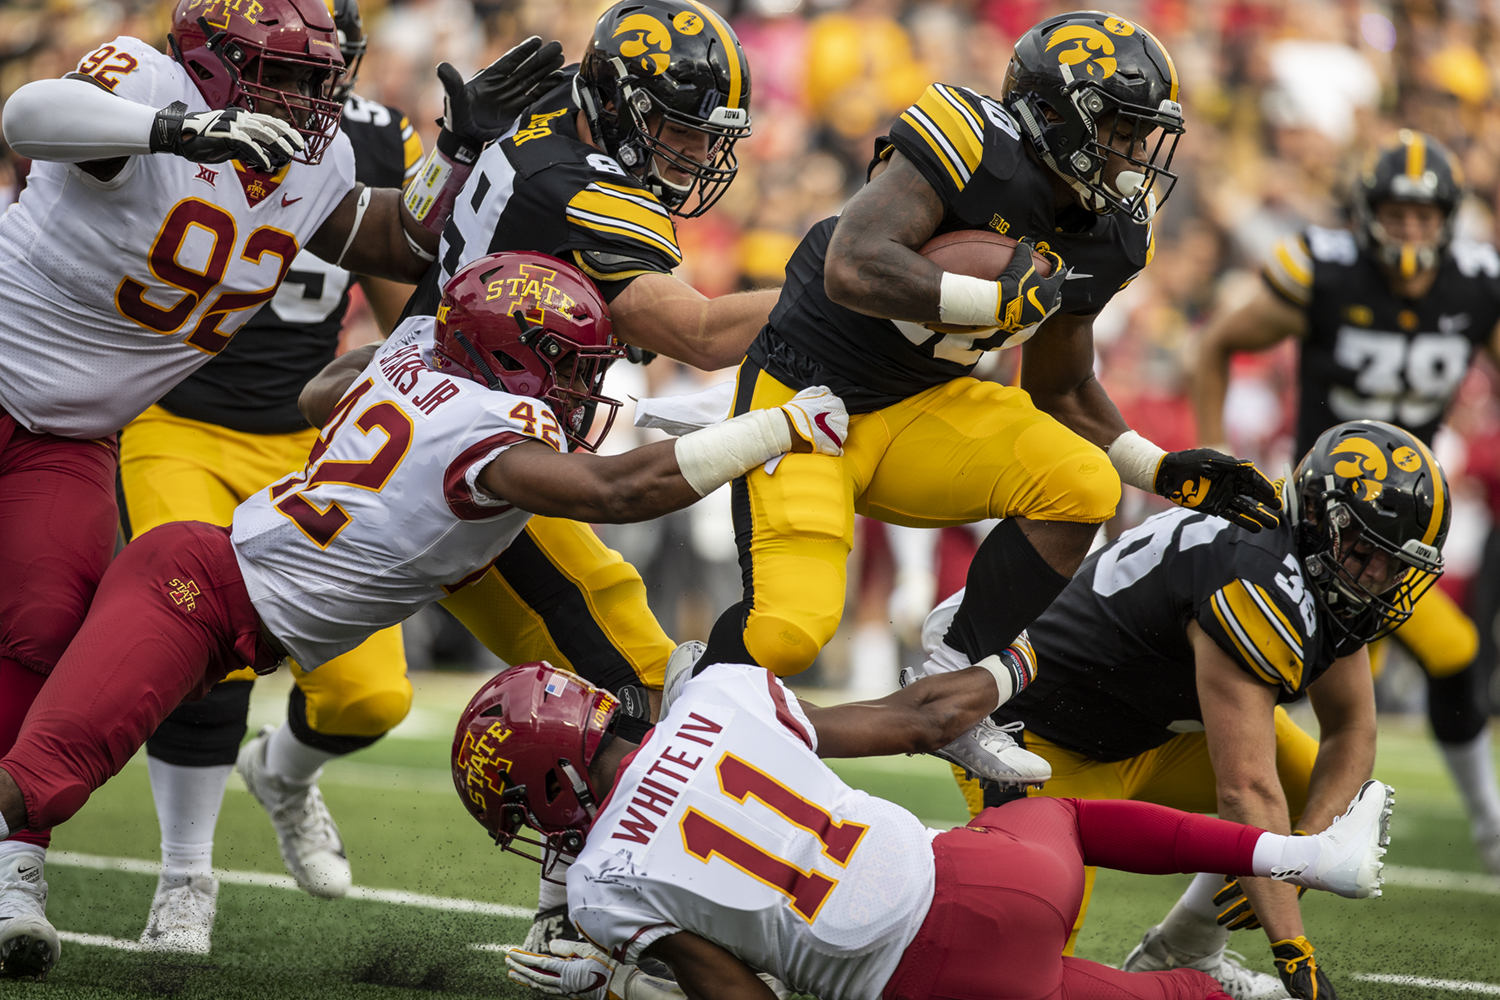 Iowa running back Mekhi Sargent carries the ball during Iowa's game against Iowa State at Kinnick Stadium on Saturday, September 8, 2018.  The score is tied at the half 3-3.